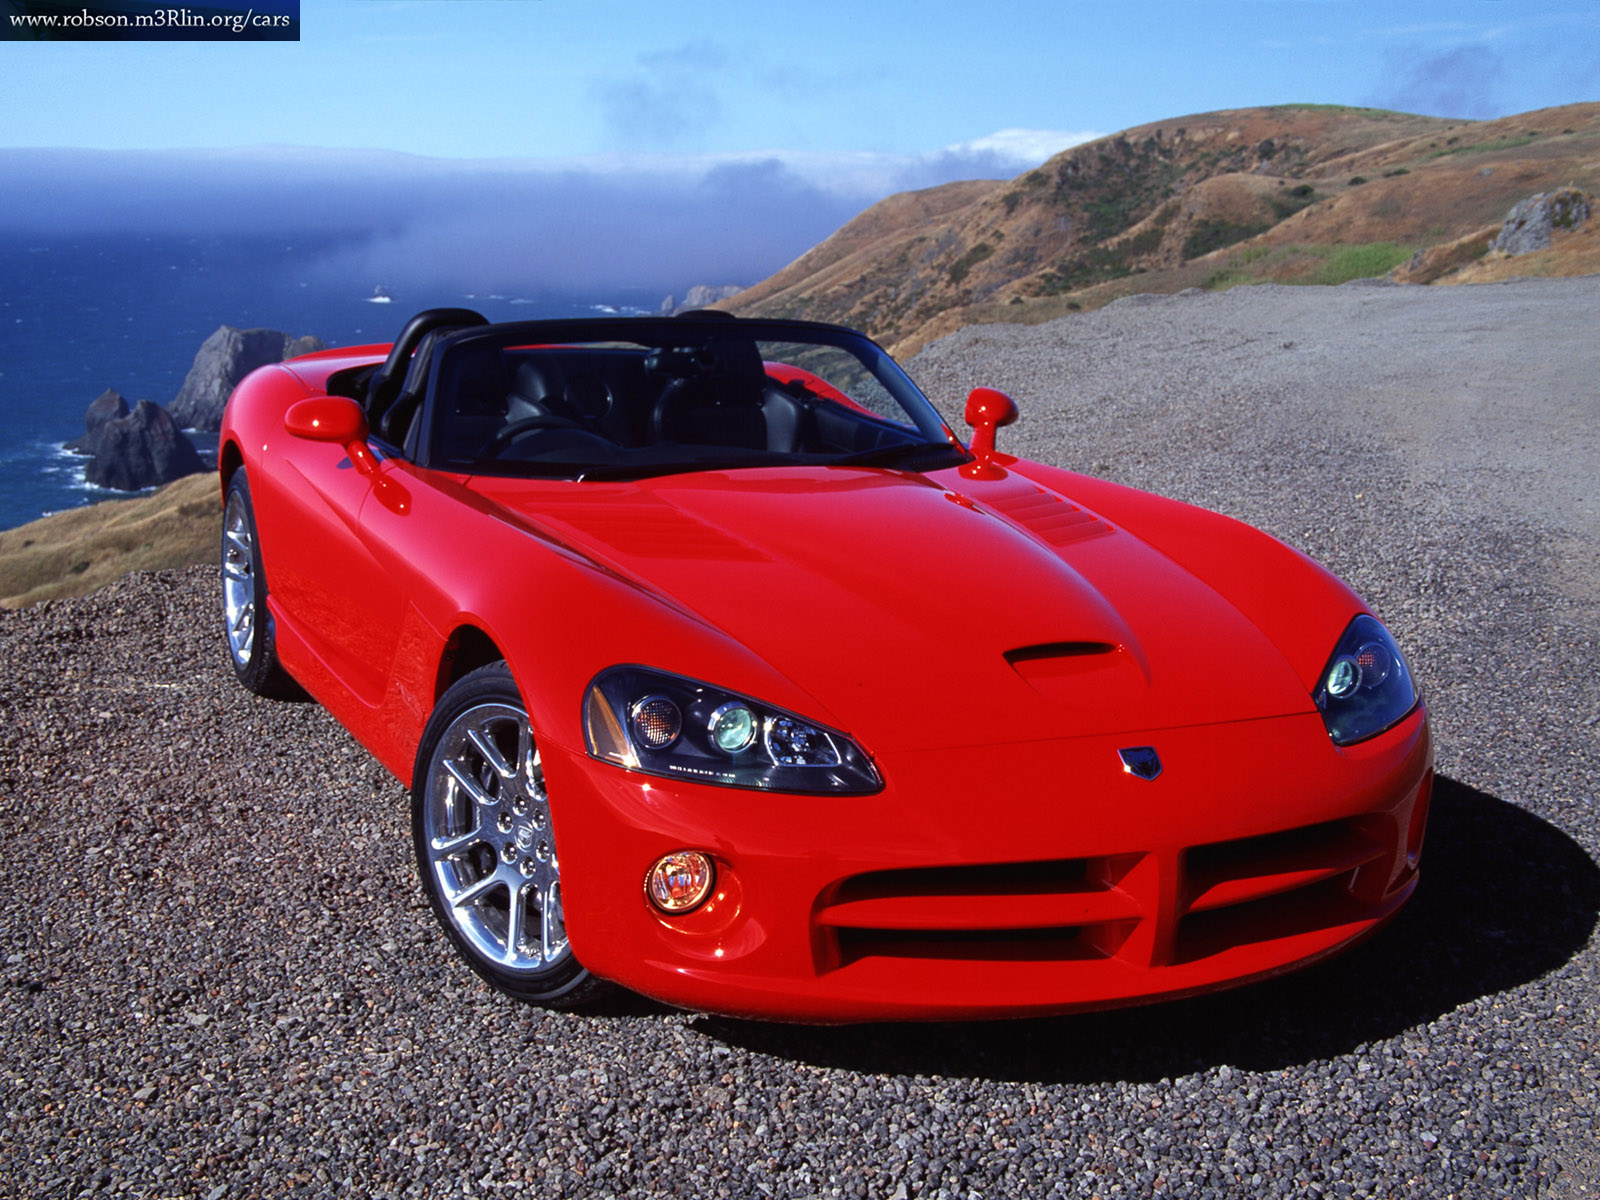 Chrysler Viper: 08 фото